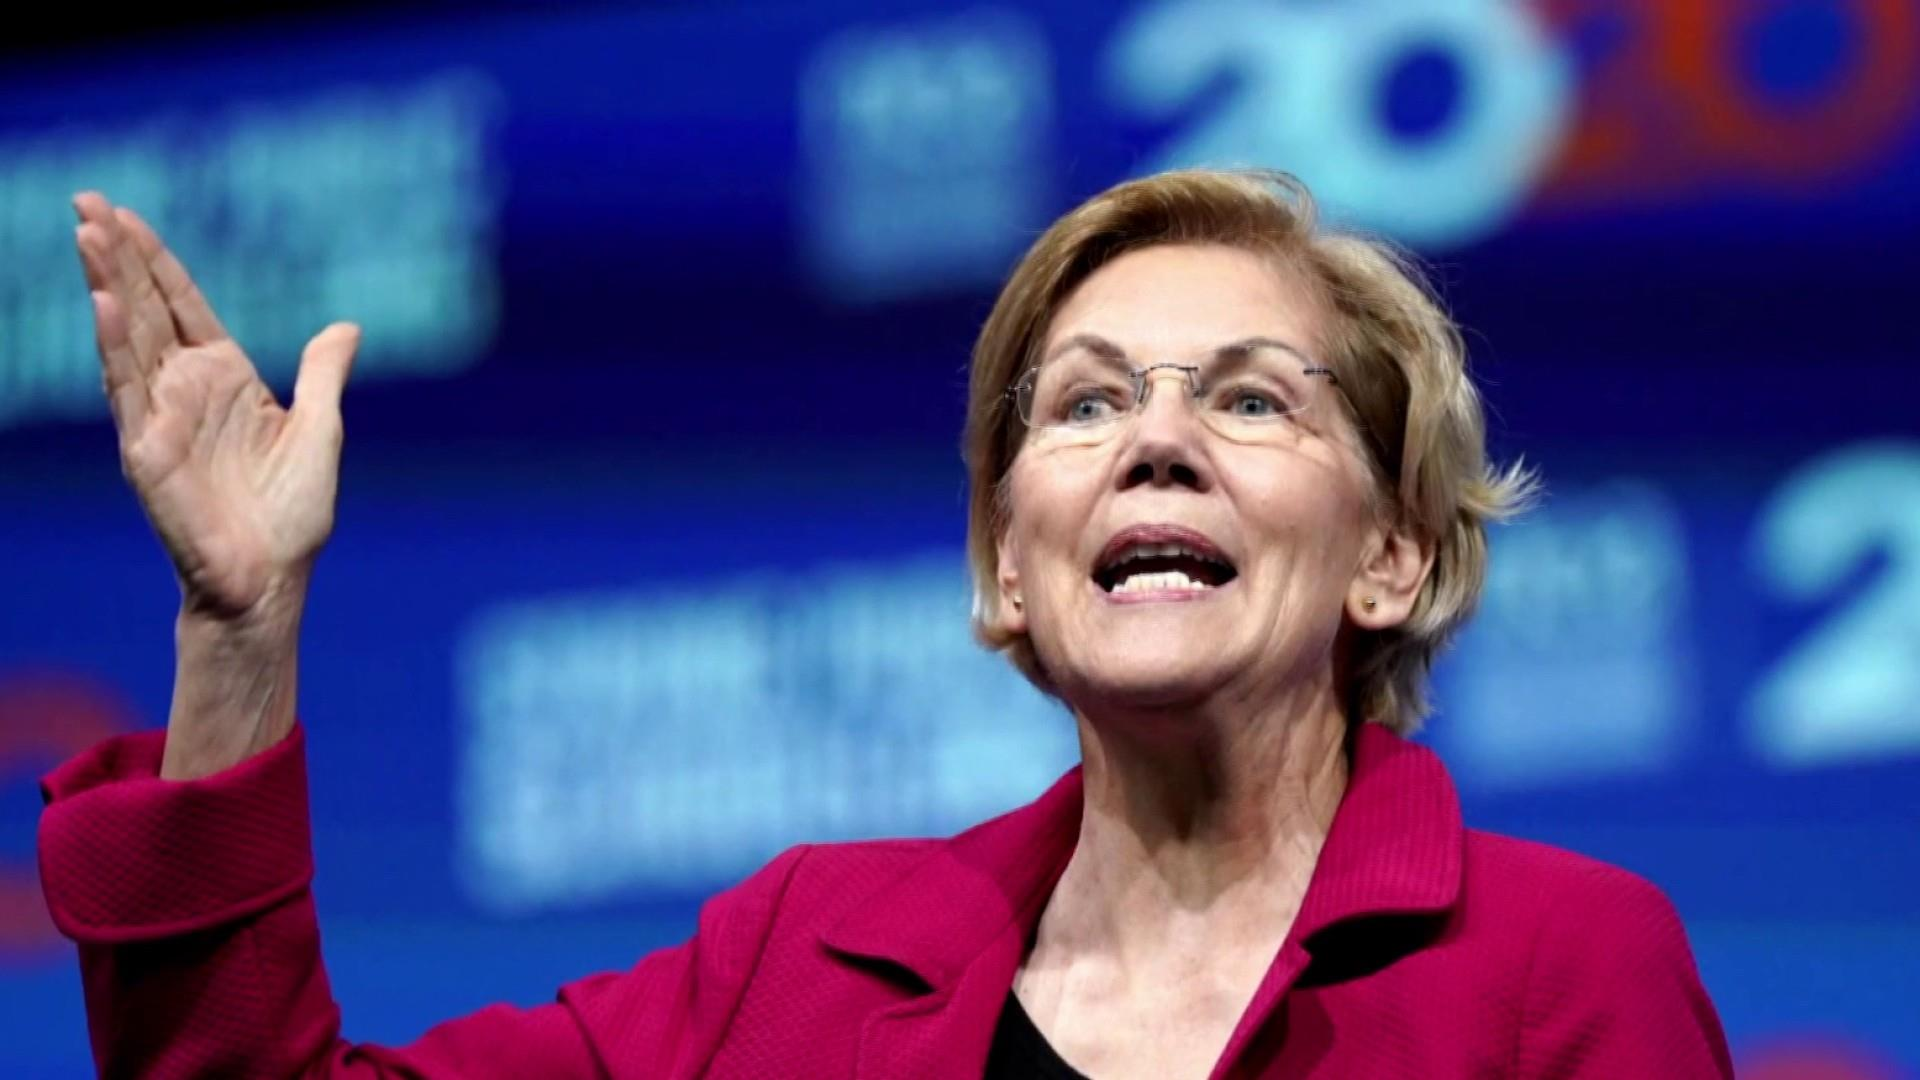 Sen. Warren raises $19.1M in the second quarter